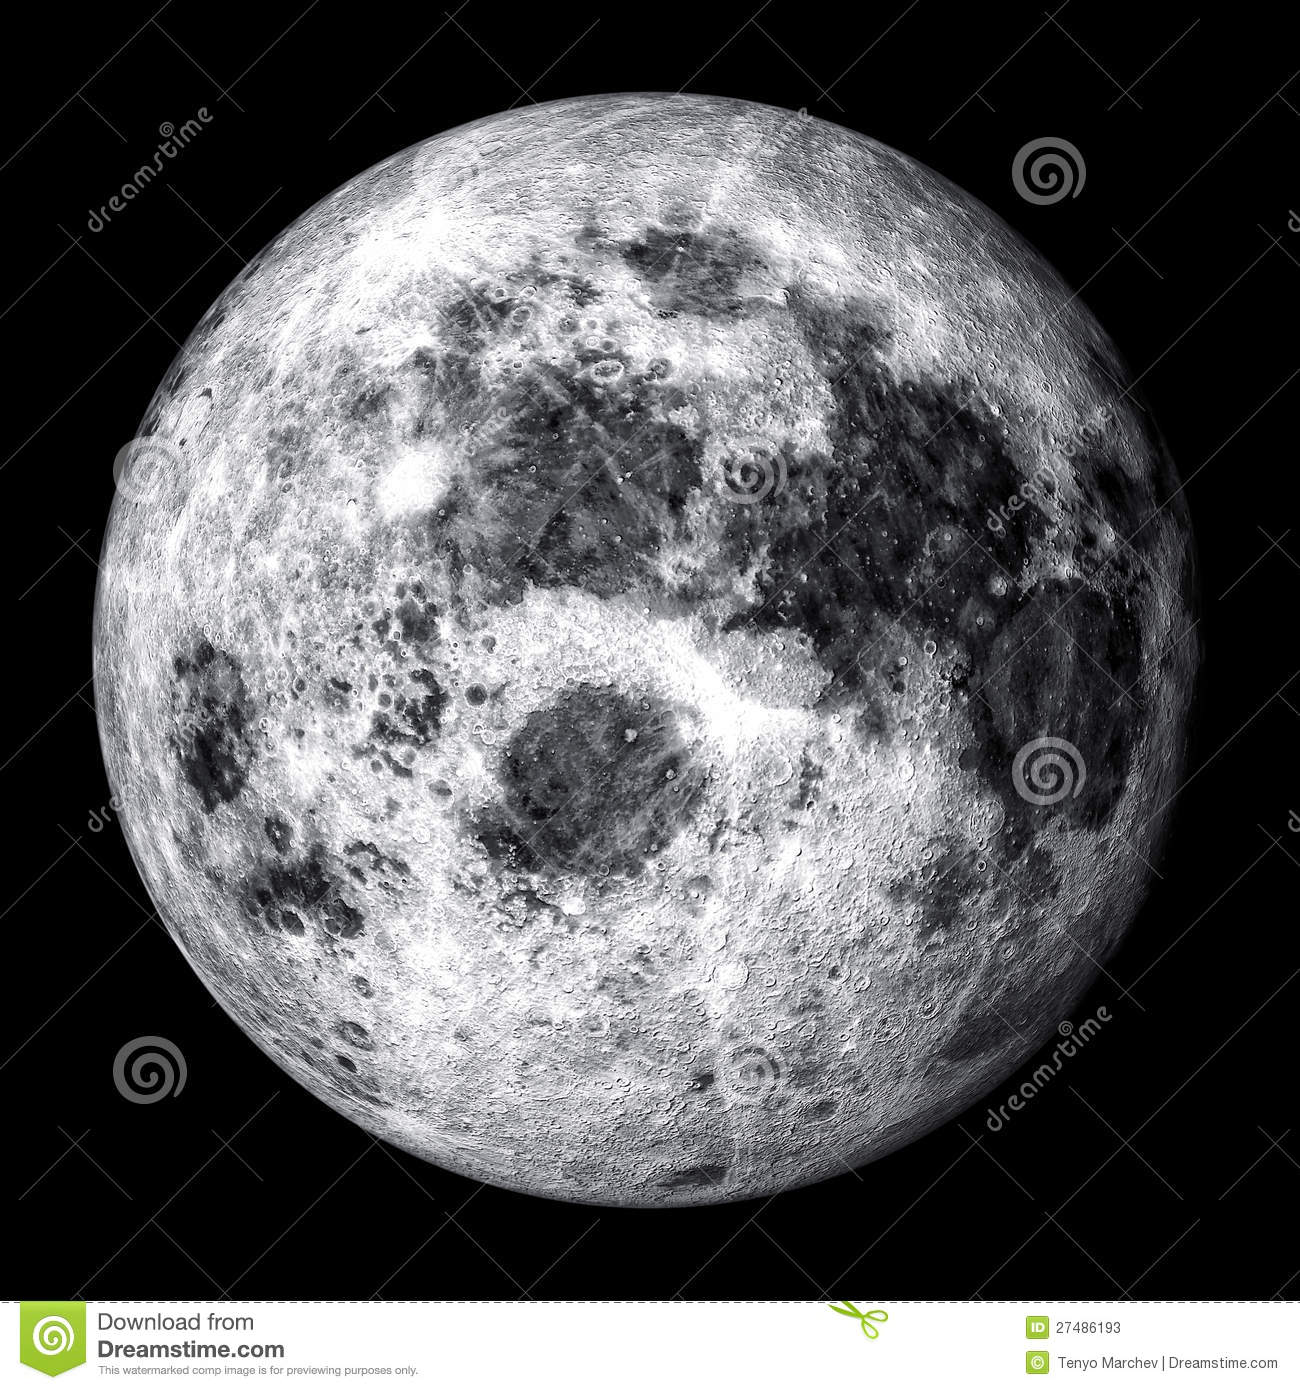 Mars Aliens Found additionally Blue Polo Logo In Small Iphone Wallpaper Download furthermore Stock Illustration Cartoon Tombstone Grass White Background Image44830962 furthermore Stock Photos Realistic Full Moon Image27486193 moreover Debut Summer Supermoon Hangs In The Summer Sky. on objects in space scary